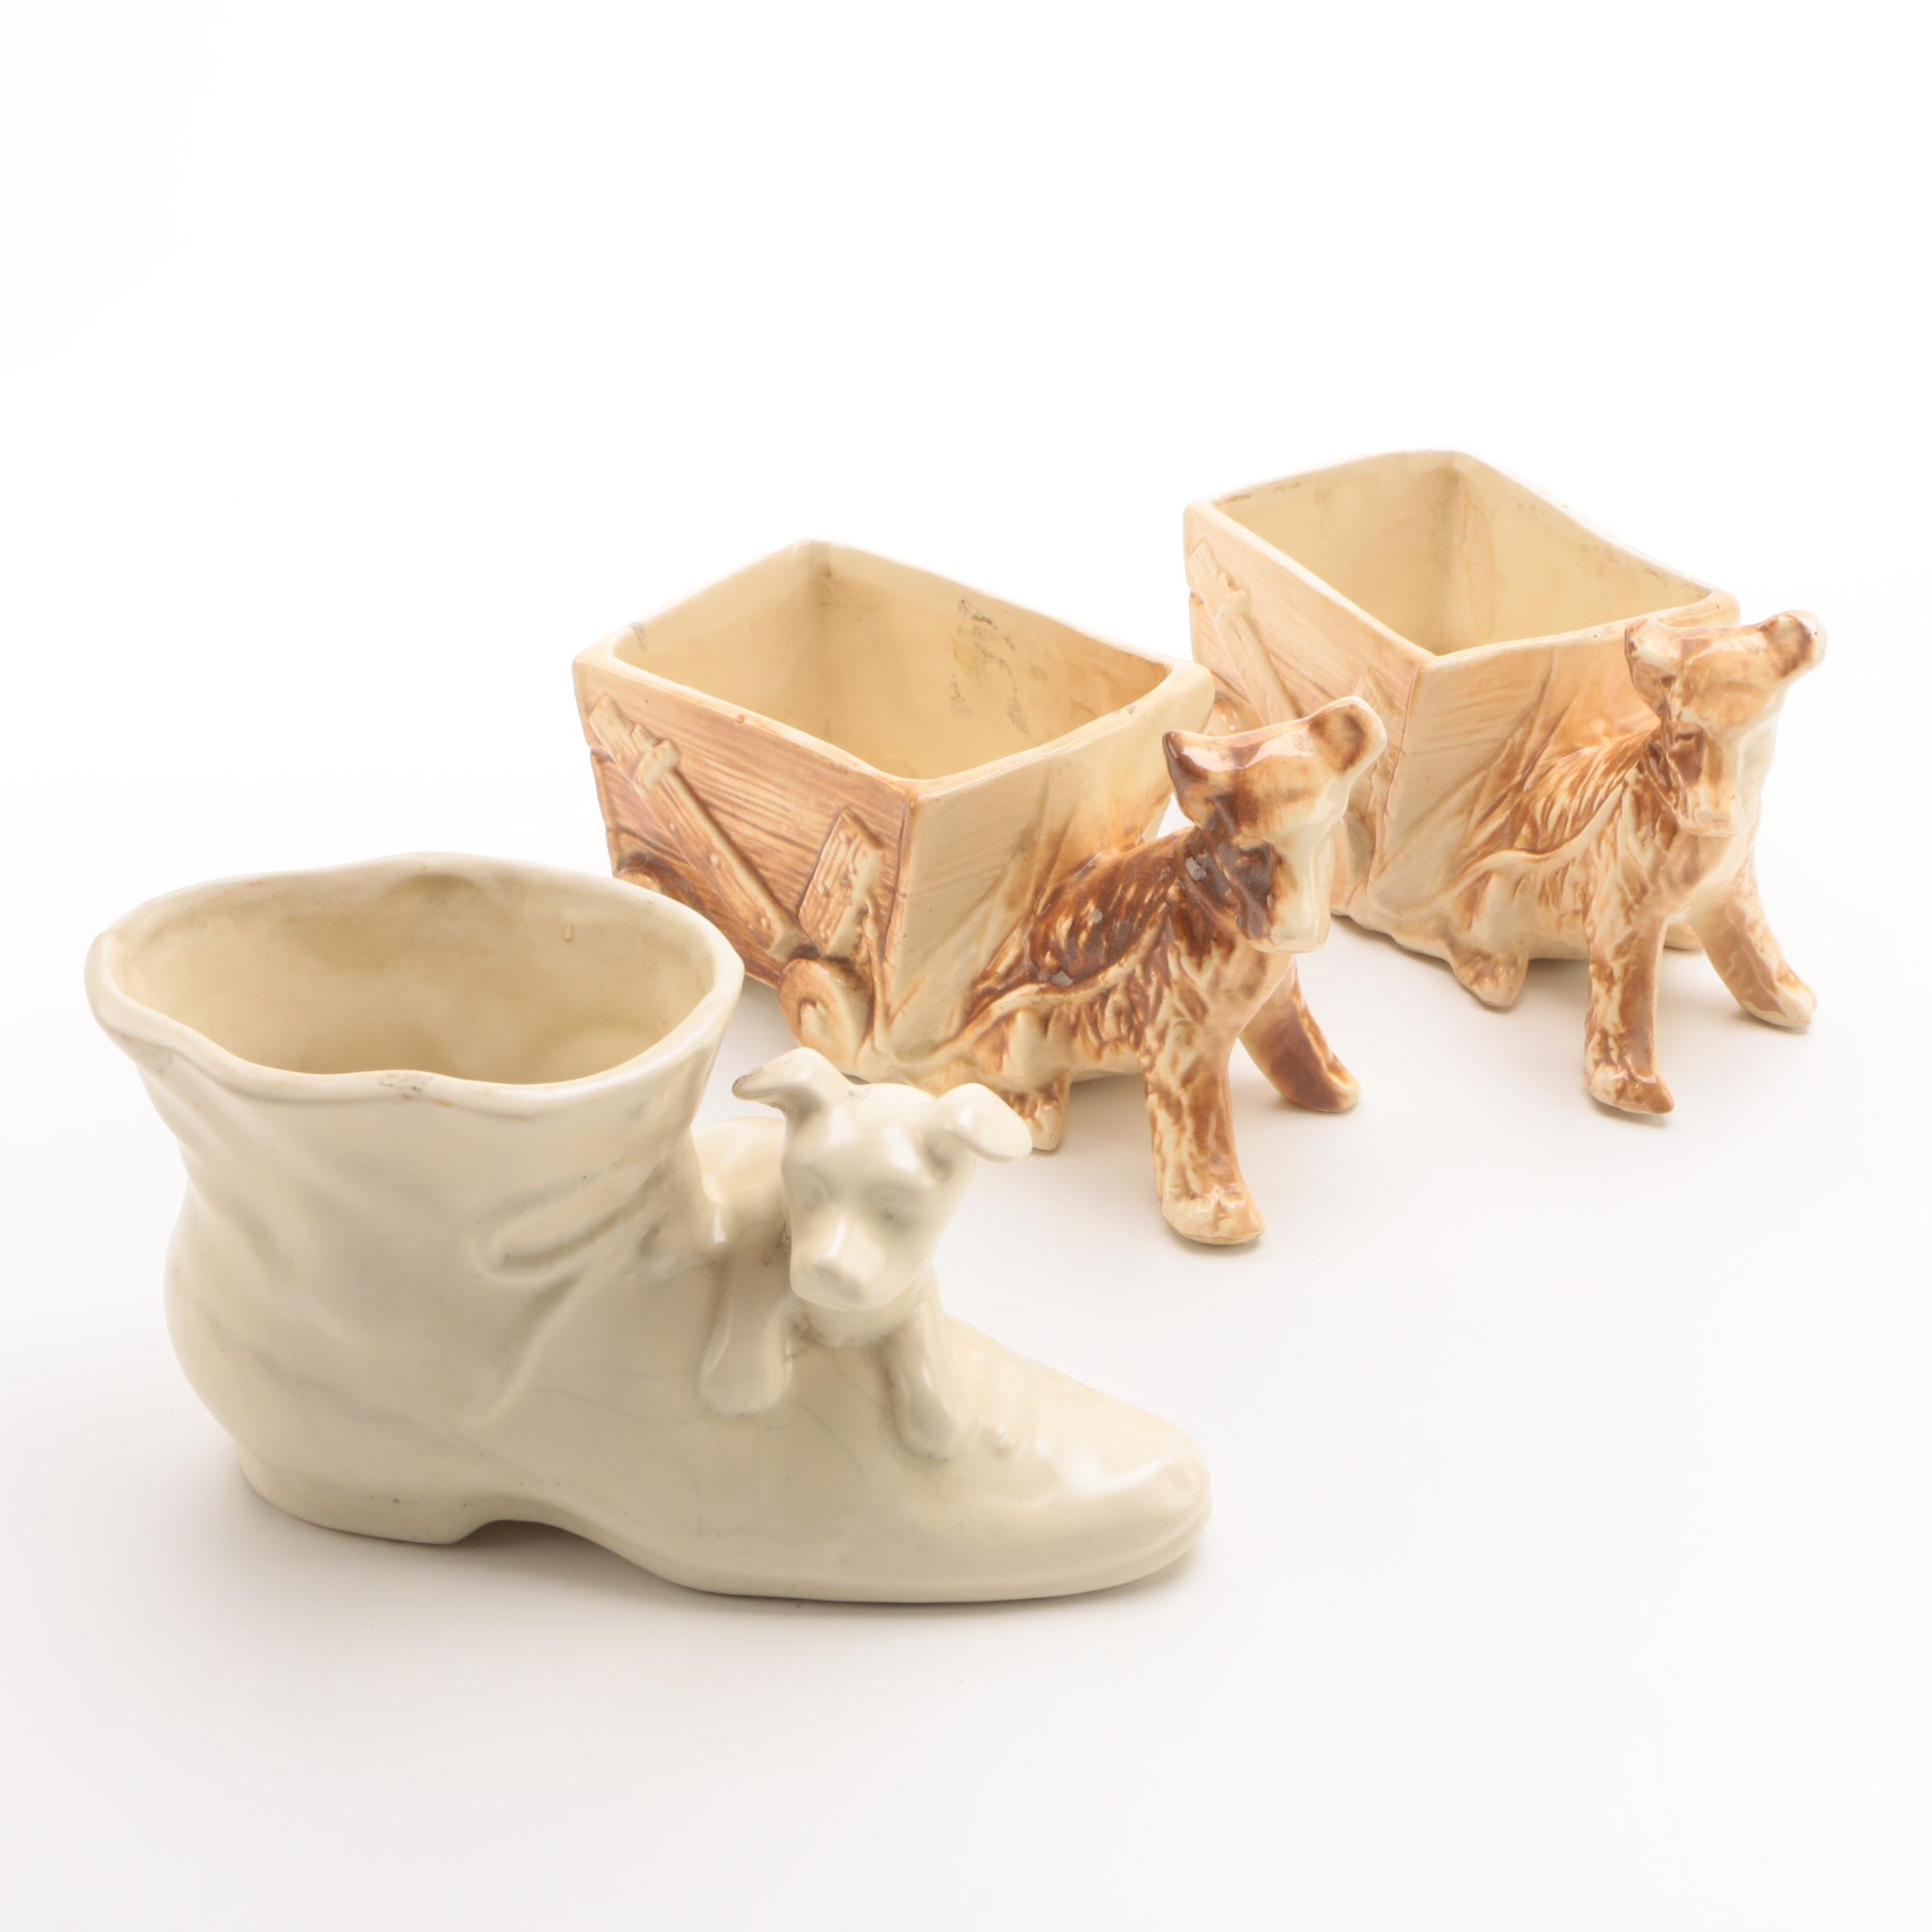 Mid-Century McCoy Pottery Dog Cart Planters and More